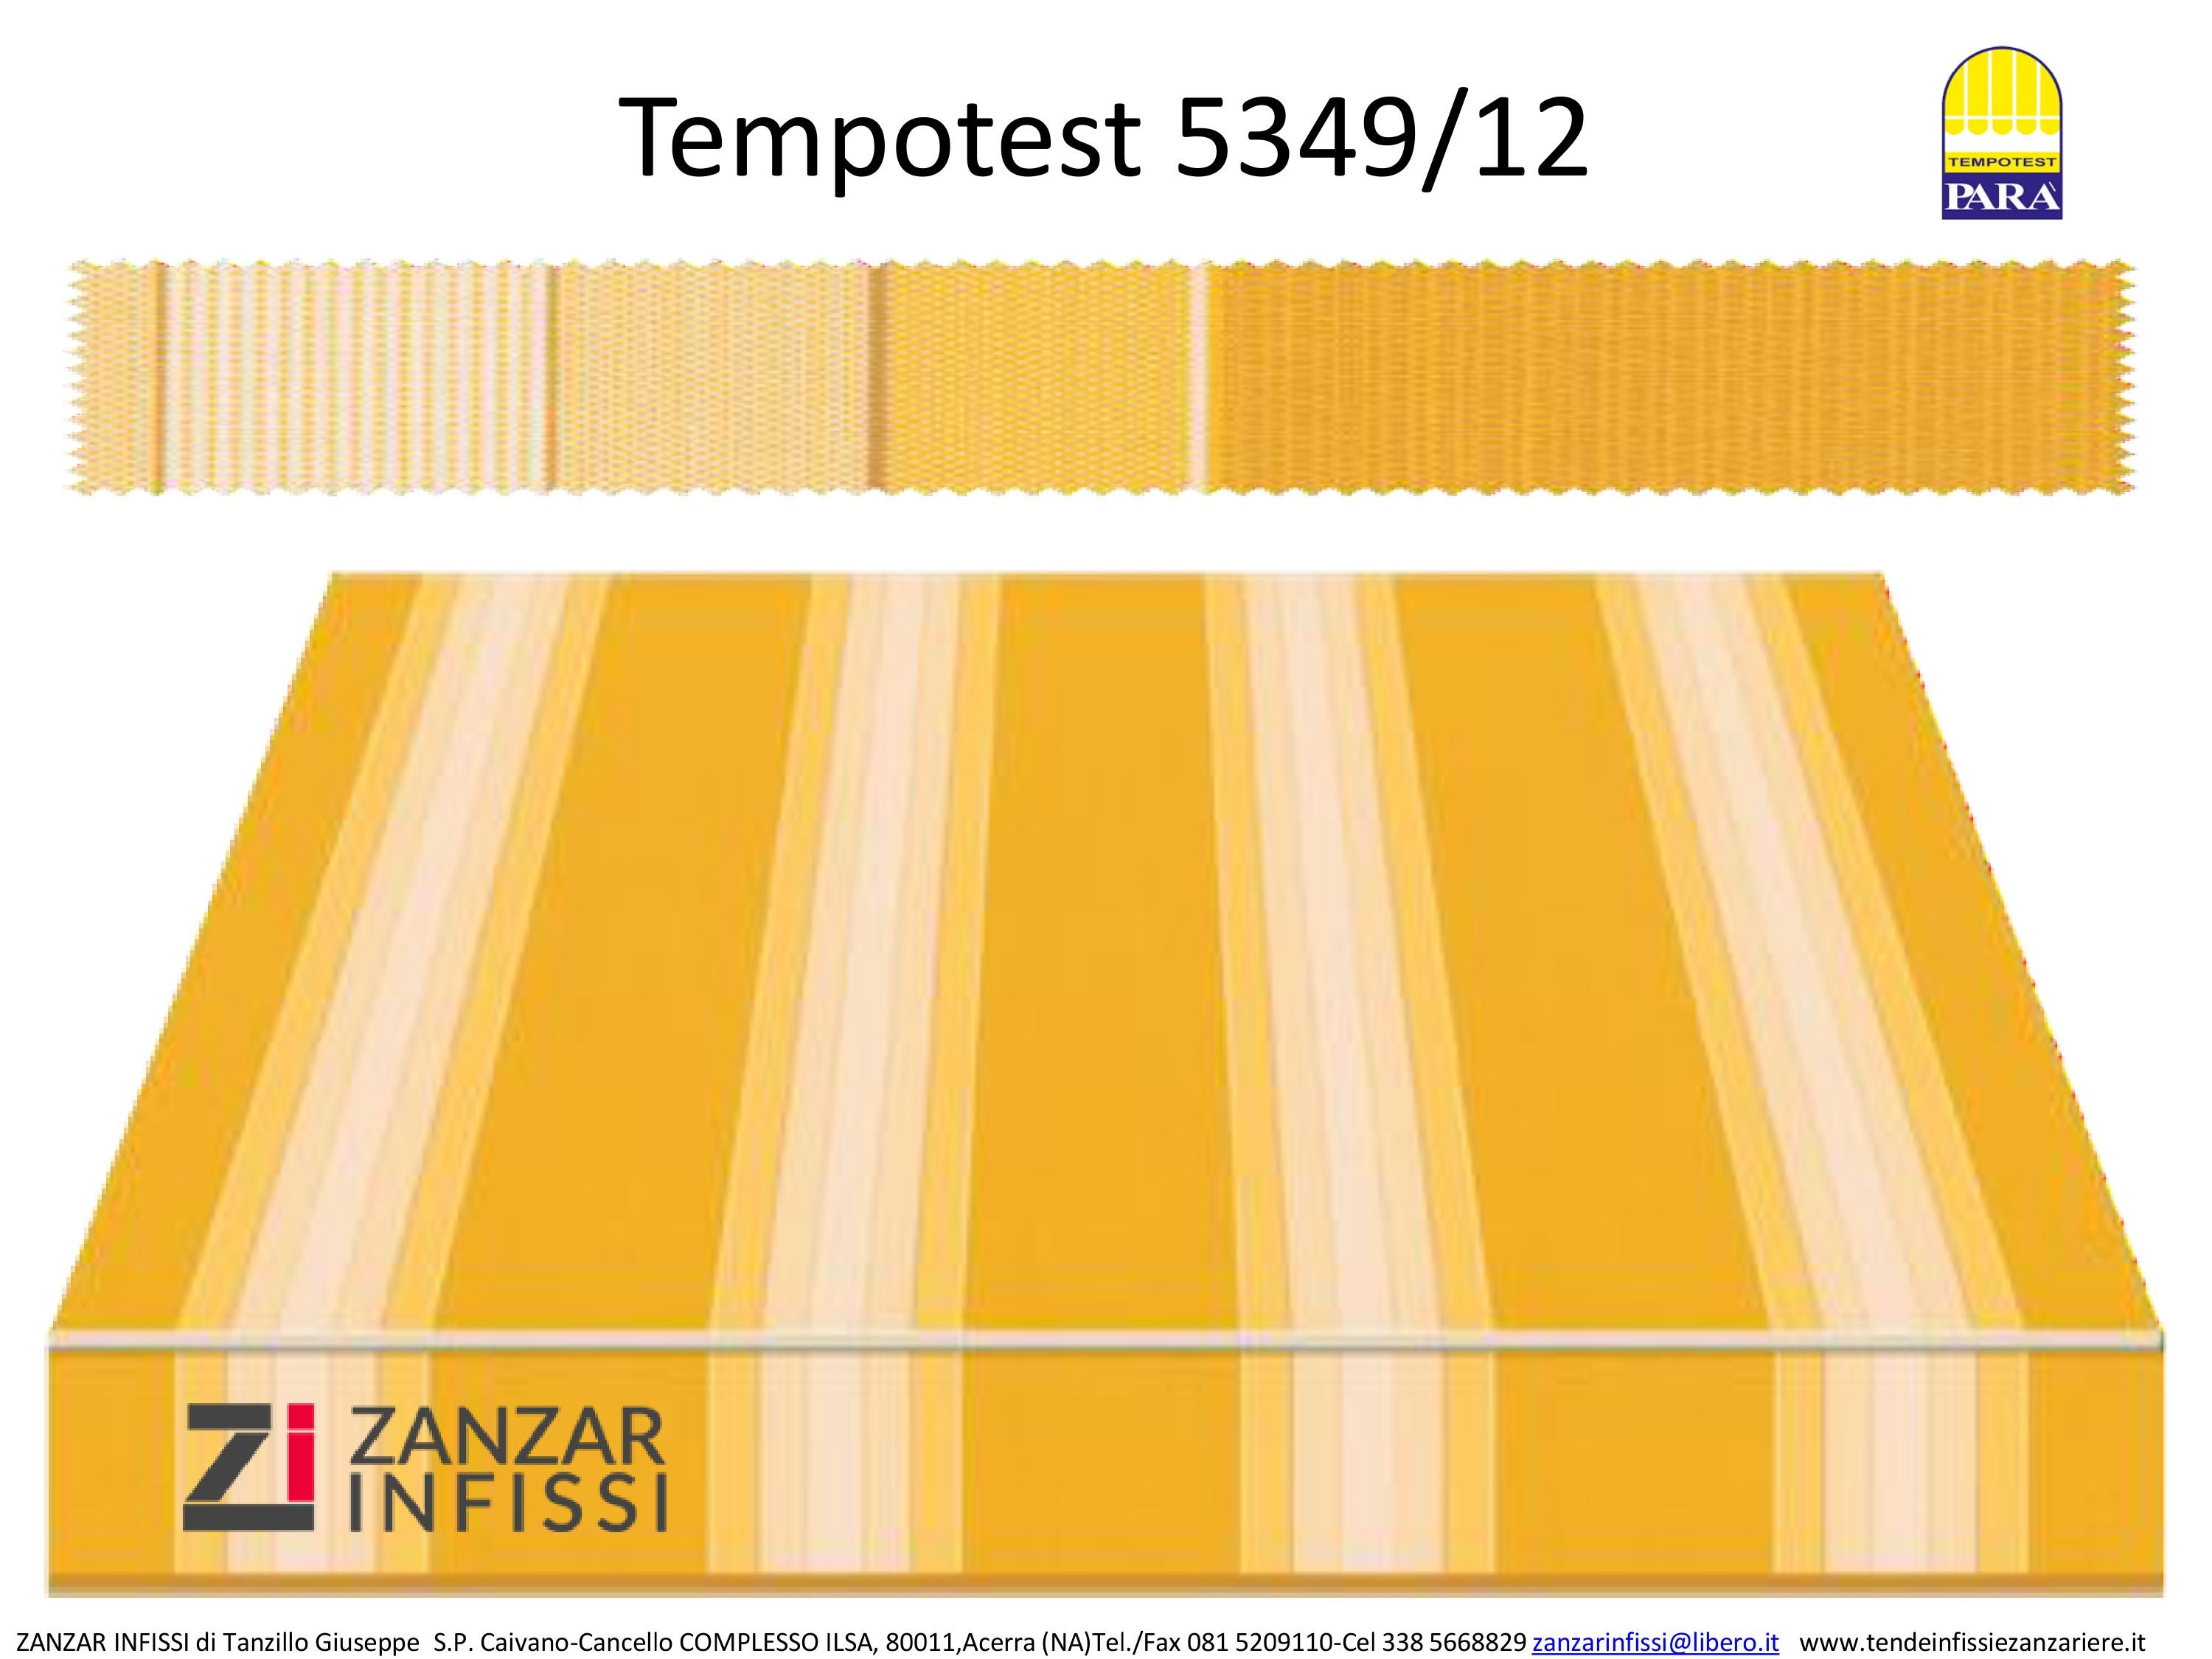 Tempotest 5349/12